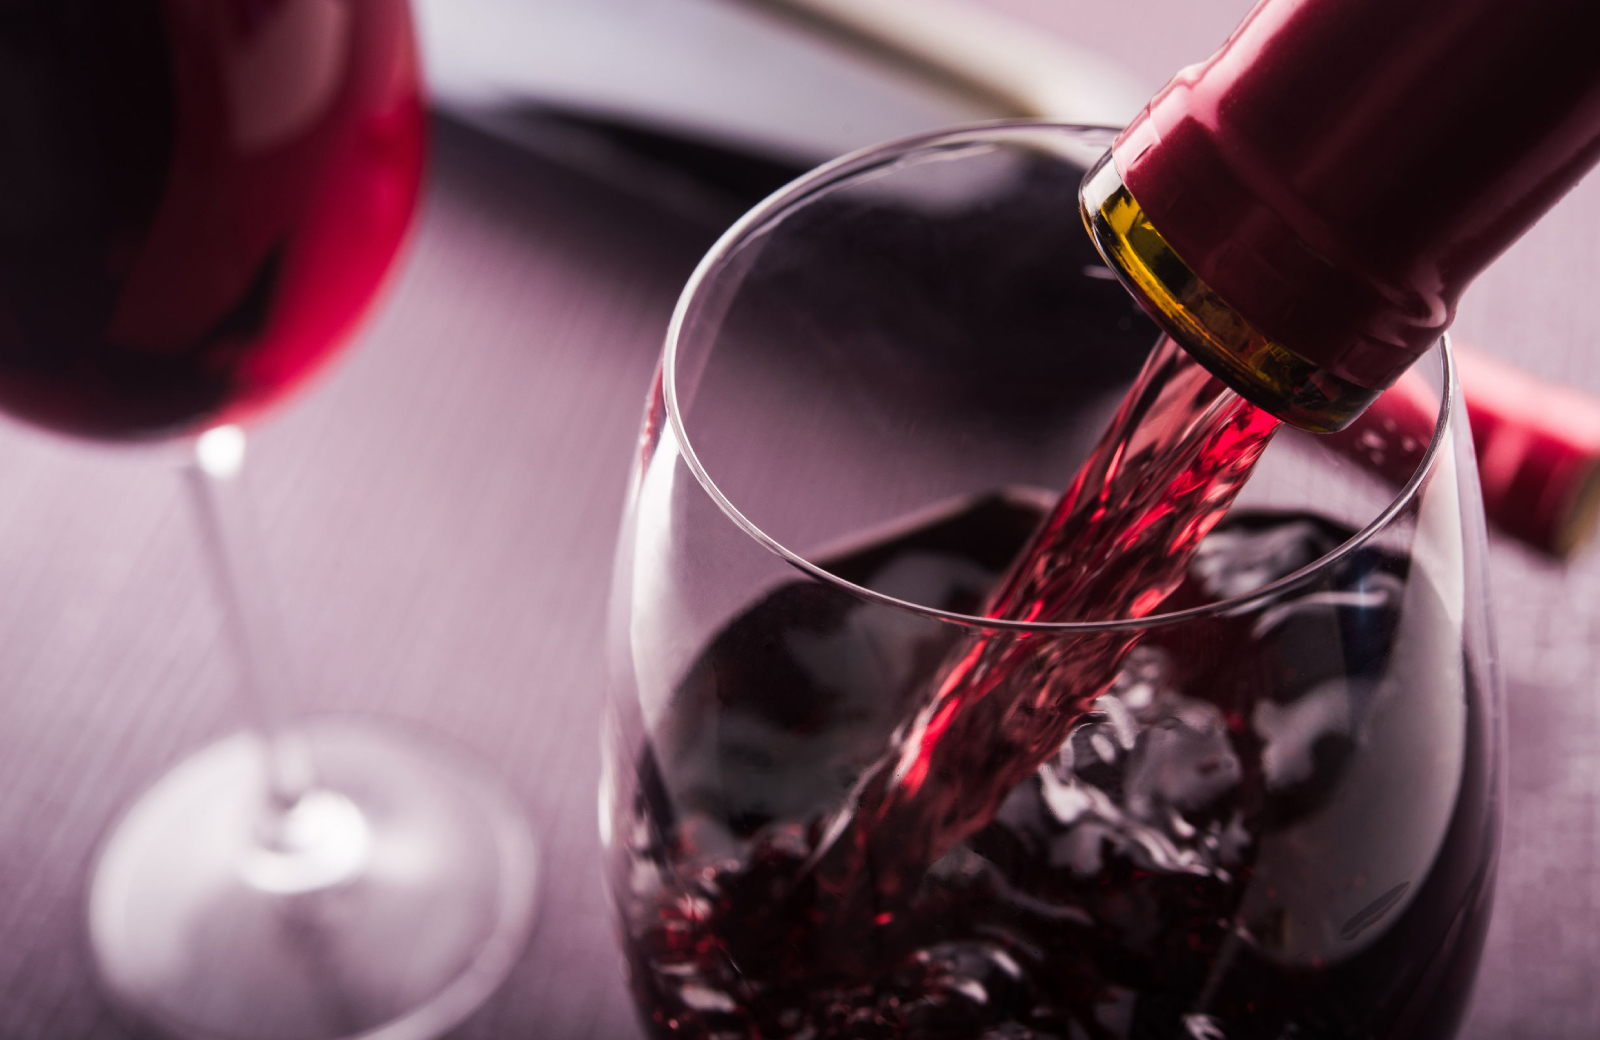 a close up of a bottle of red wine pouring into a wine glass - The Waypointe Apts